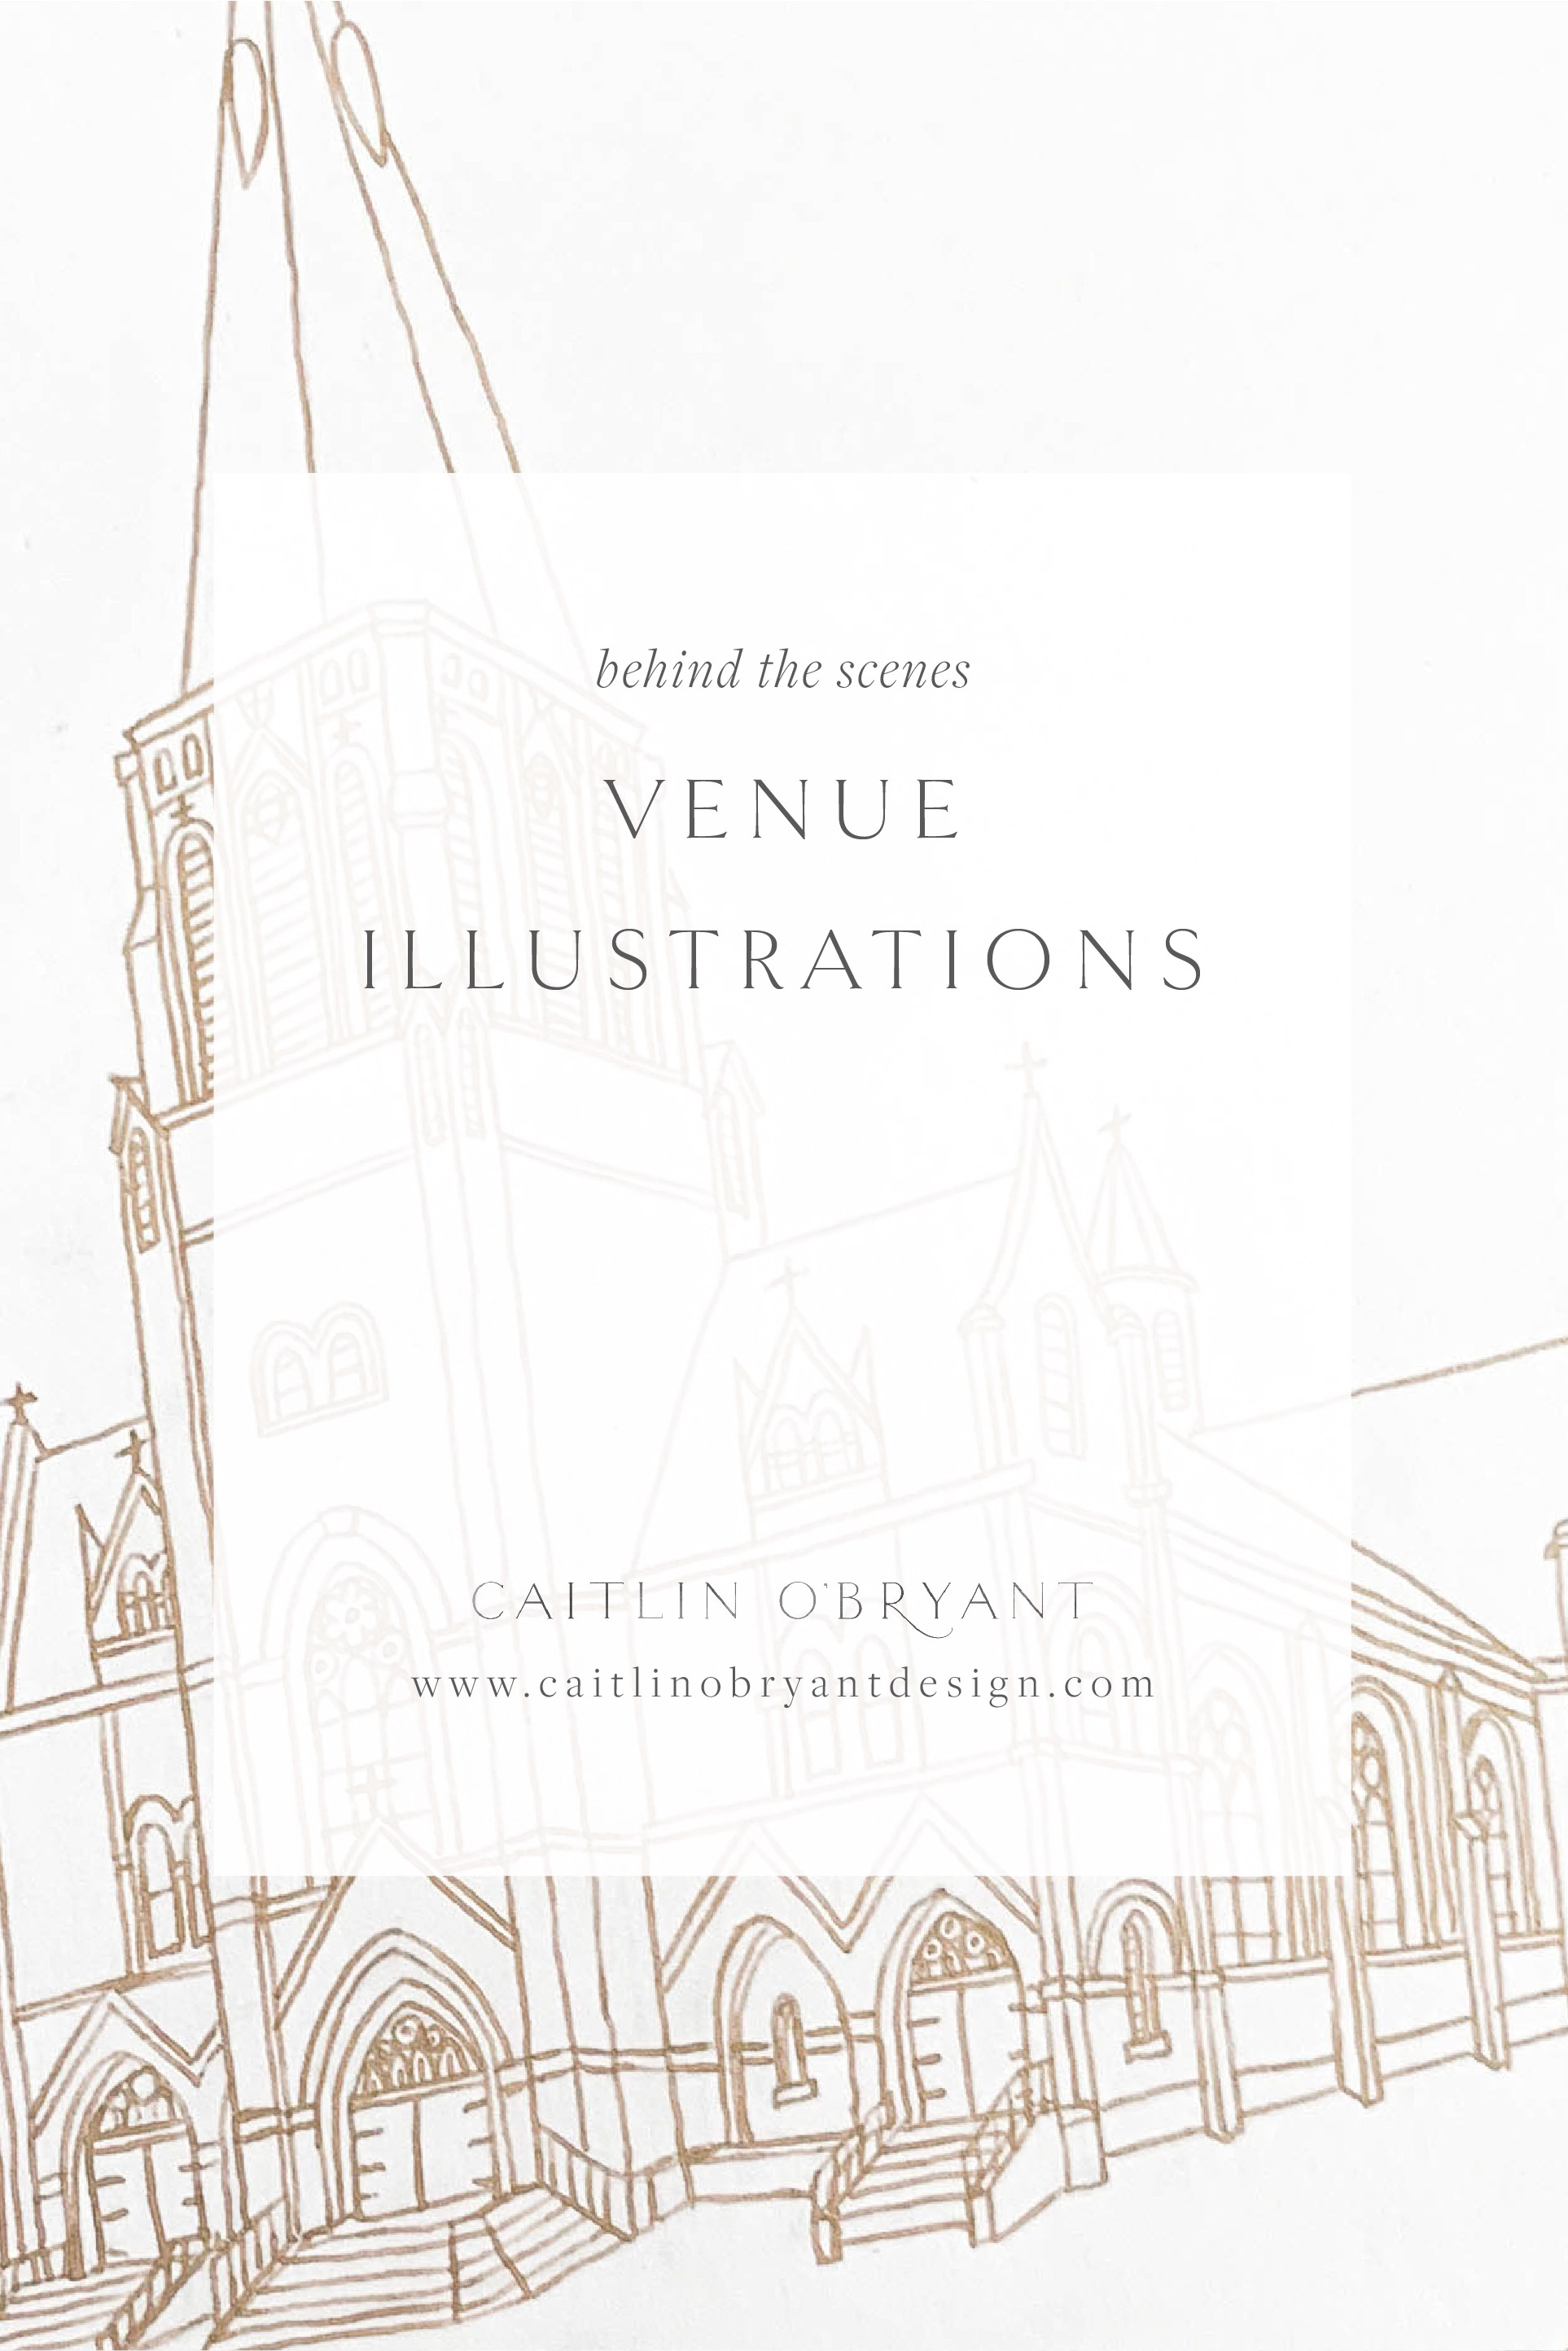 How we draw and digitize venue illustrations for wedding invitations and art prints. Luxury, high end wedding stationery and calligraphy.